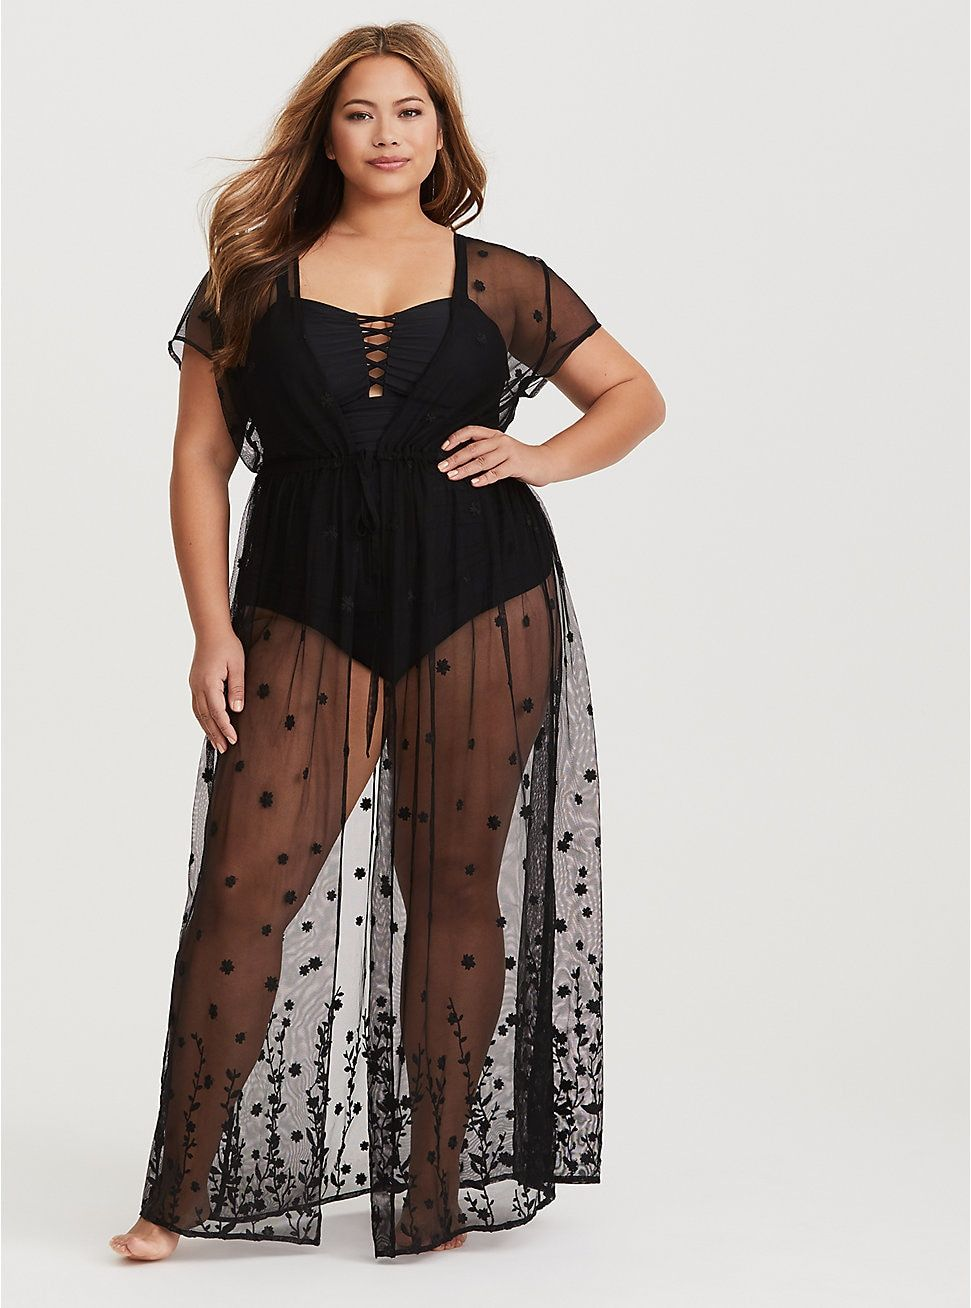 6b352b1674534 Black Sheer Mesh Maxi Cover Up in 2019 | Wear | Plus size swimsuits ...